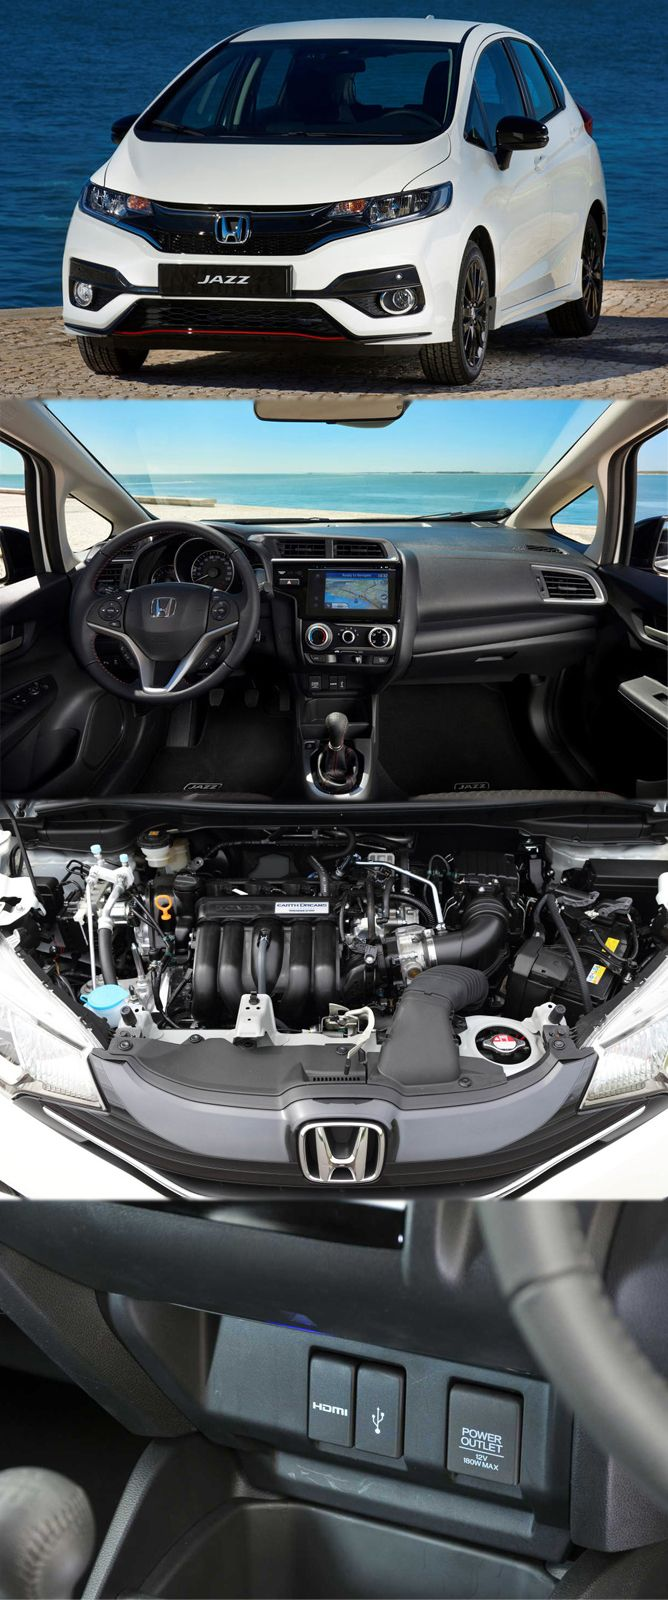 Honda Jazz is A Hot Saleable Commodity in Hatchback Family https://www.reconditionengines.co.uk/blog/category/honda/